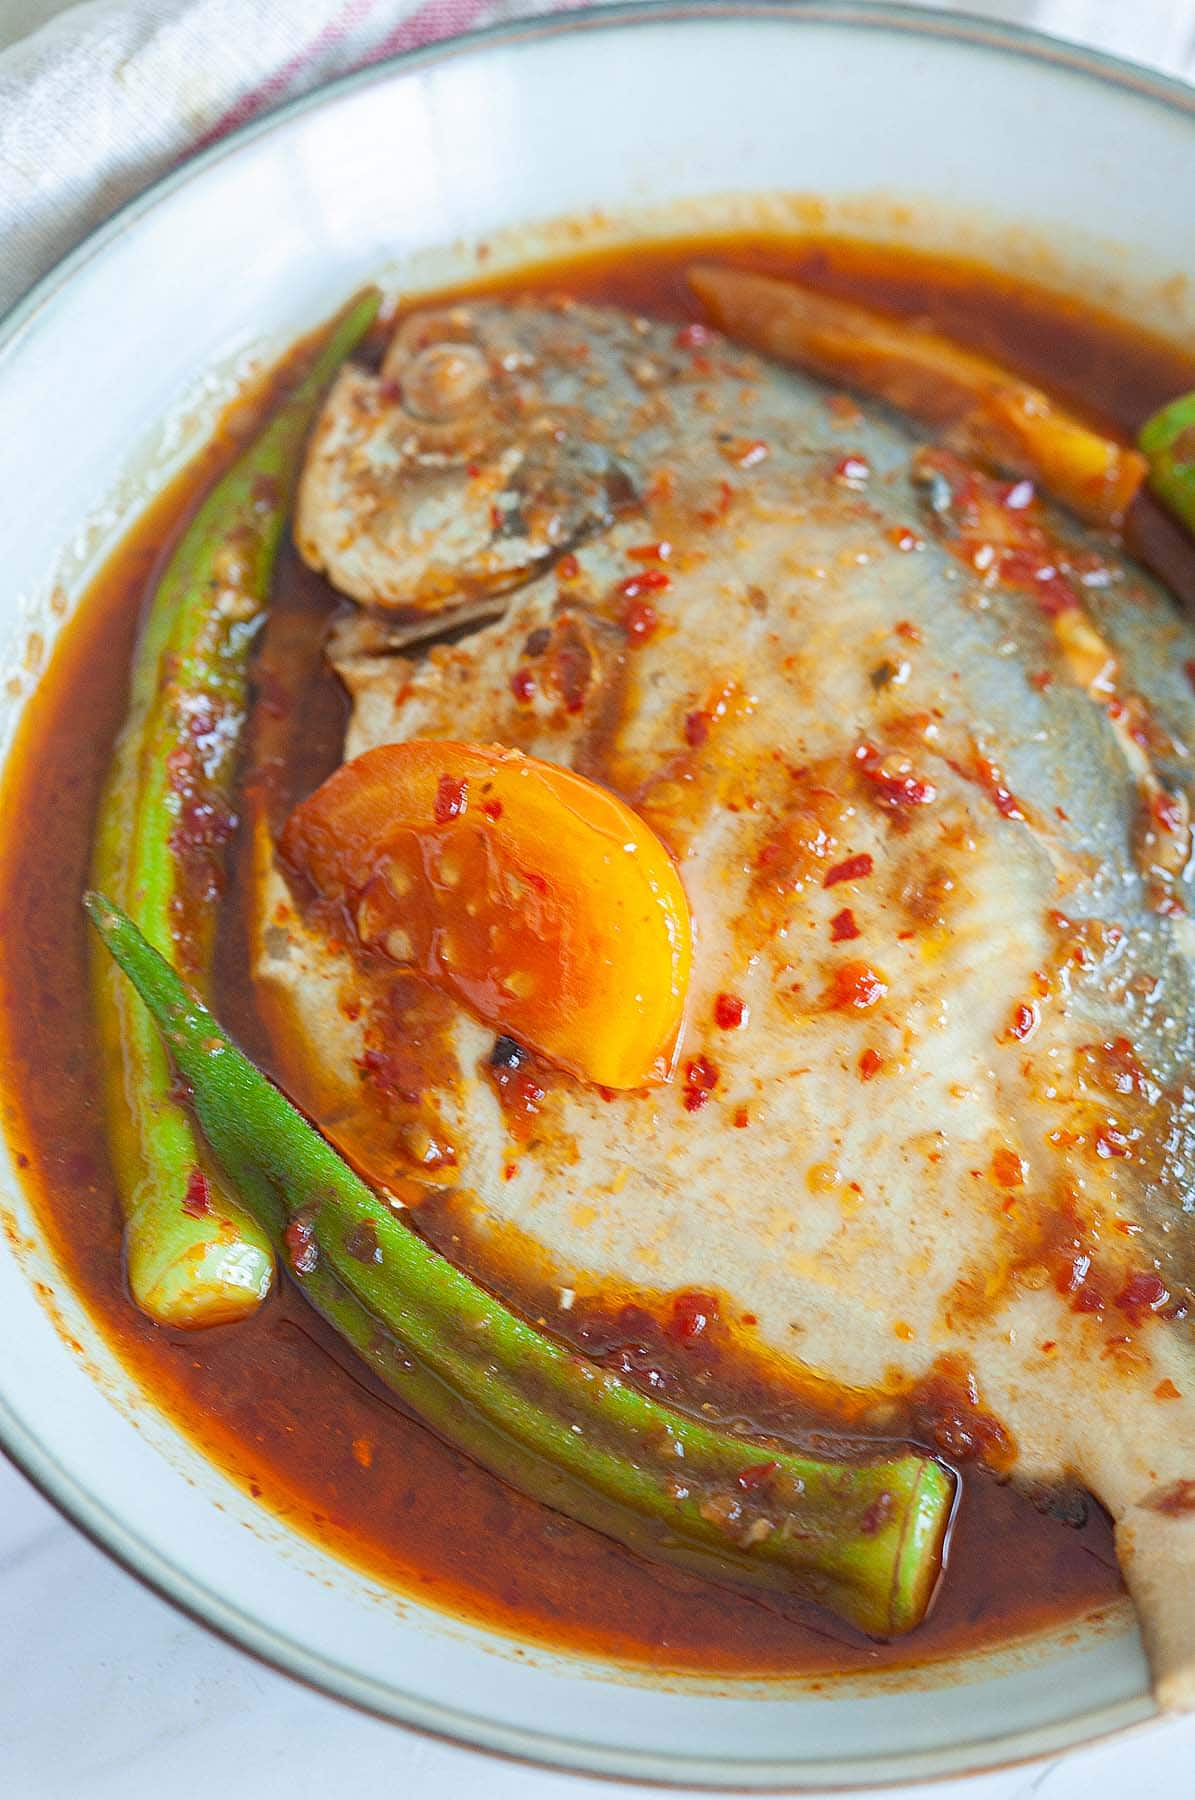 spicy sour sauce on top the fish prepare to serve.